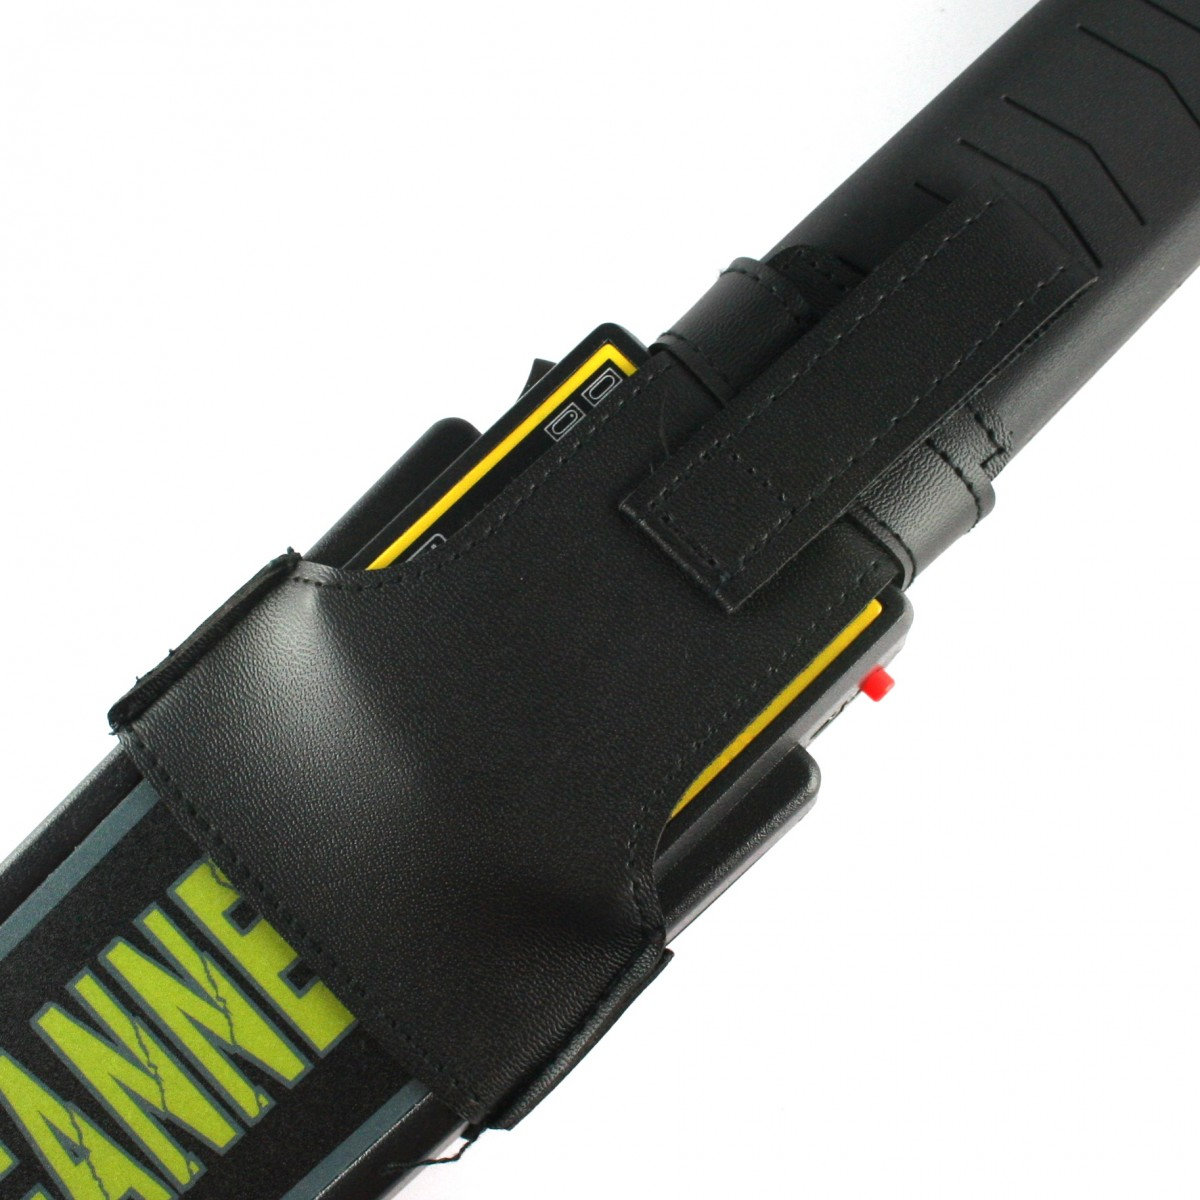 Hand Held Weapon Detector – Security Scanner